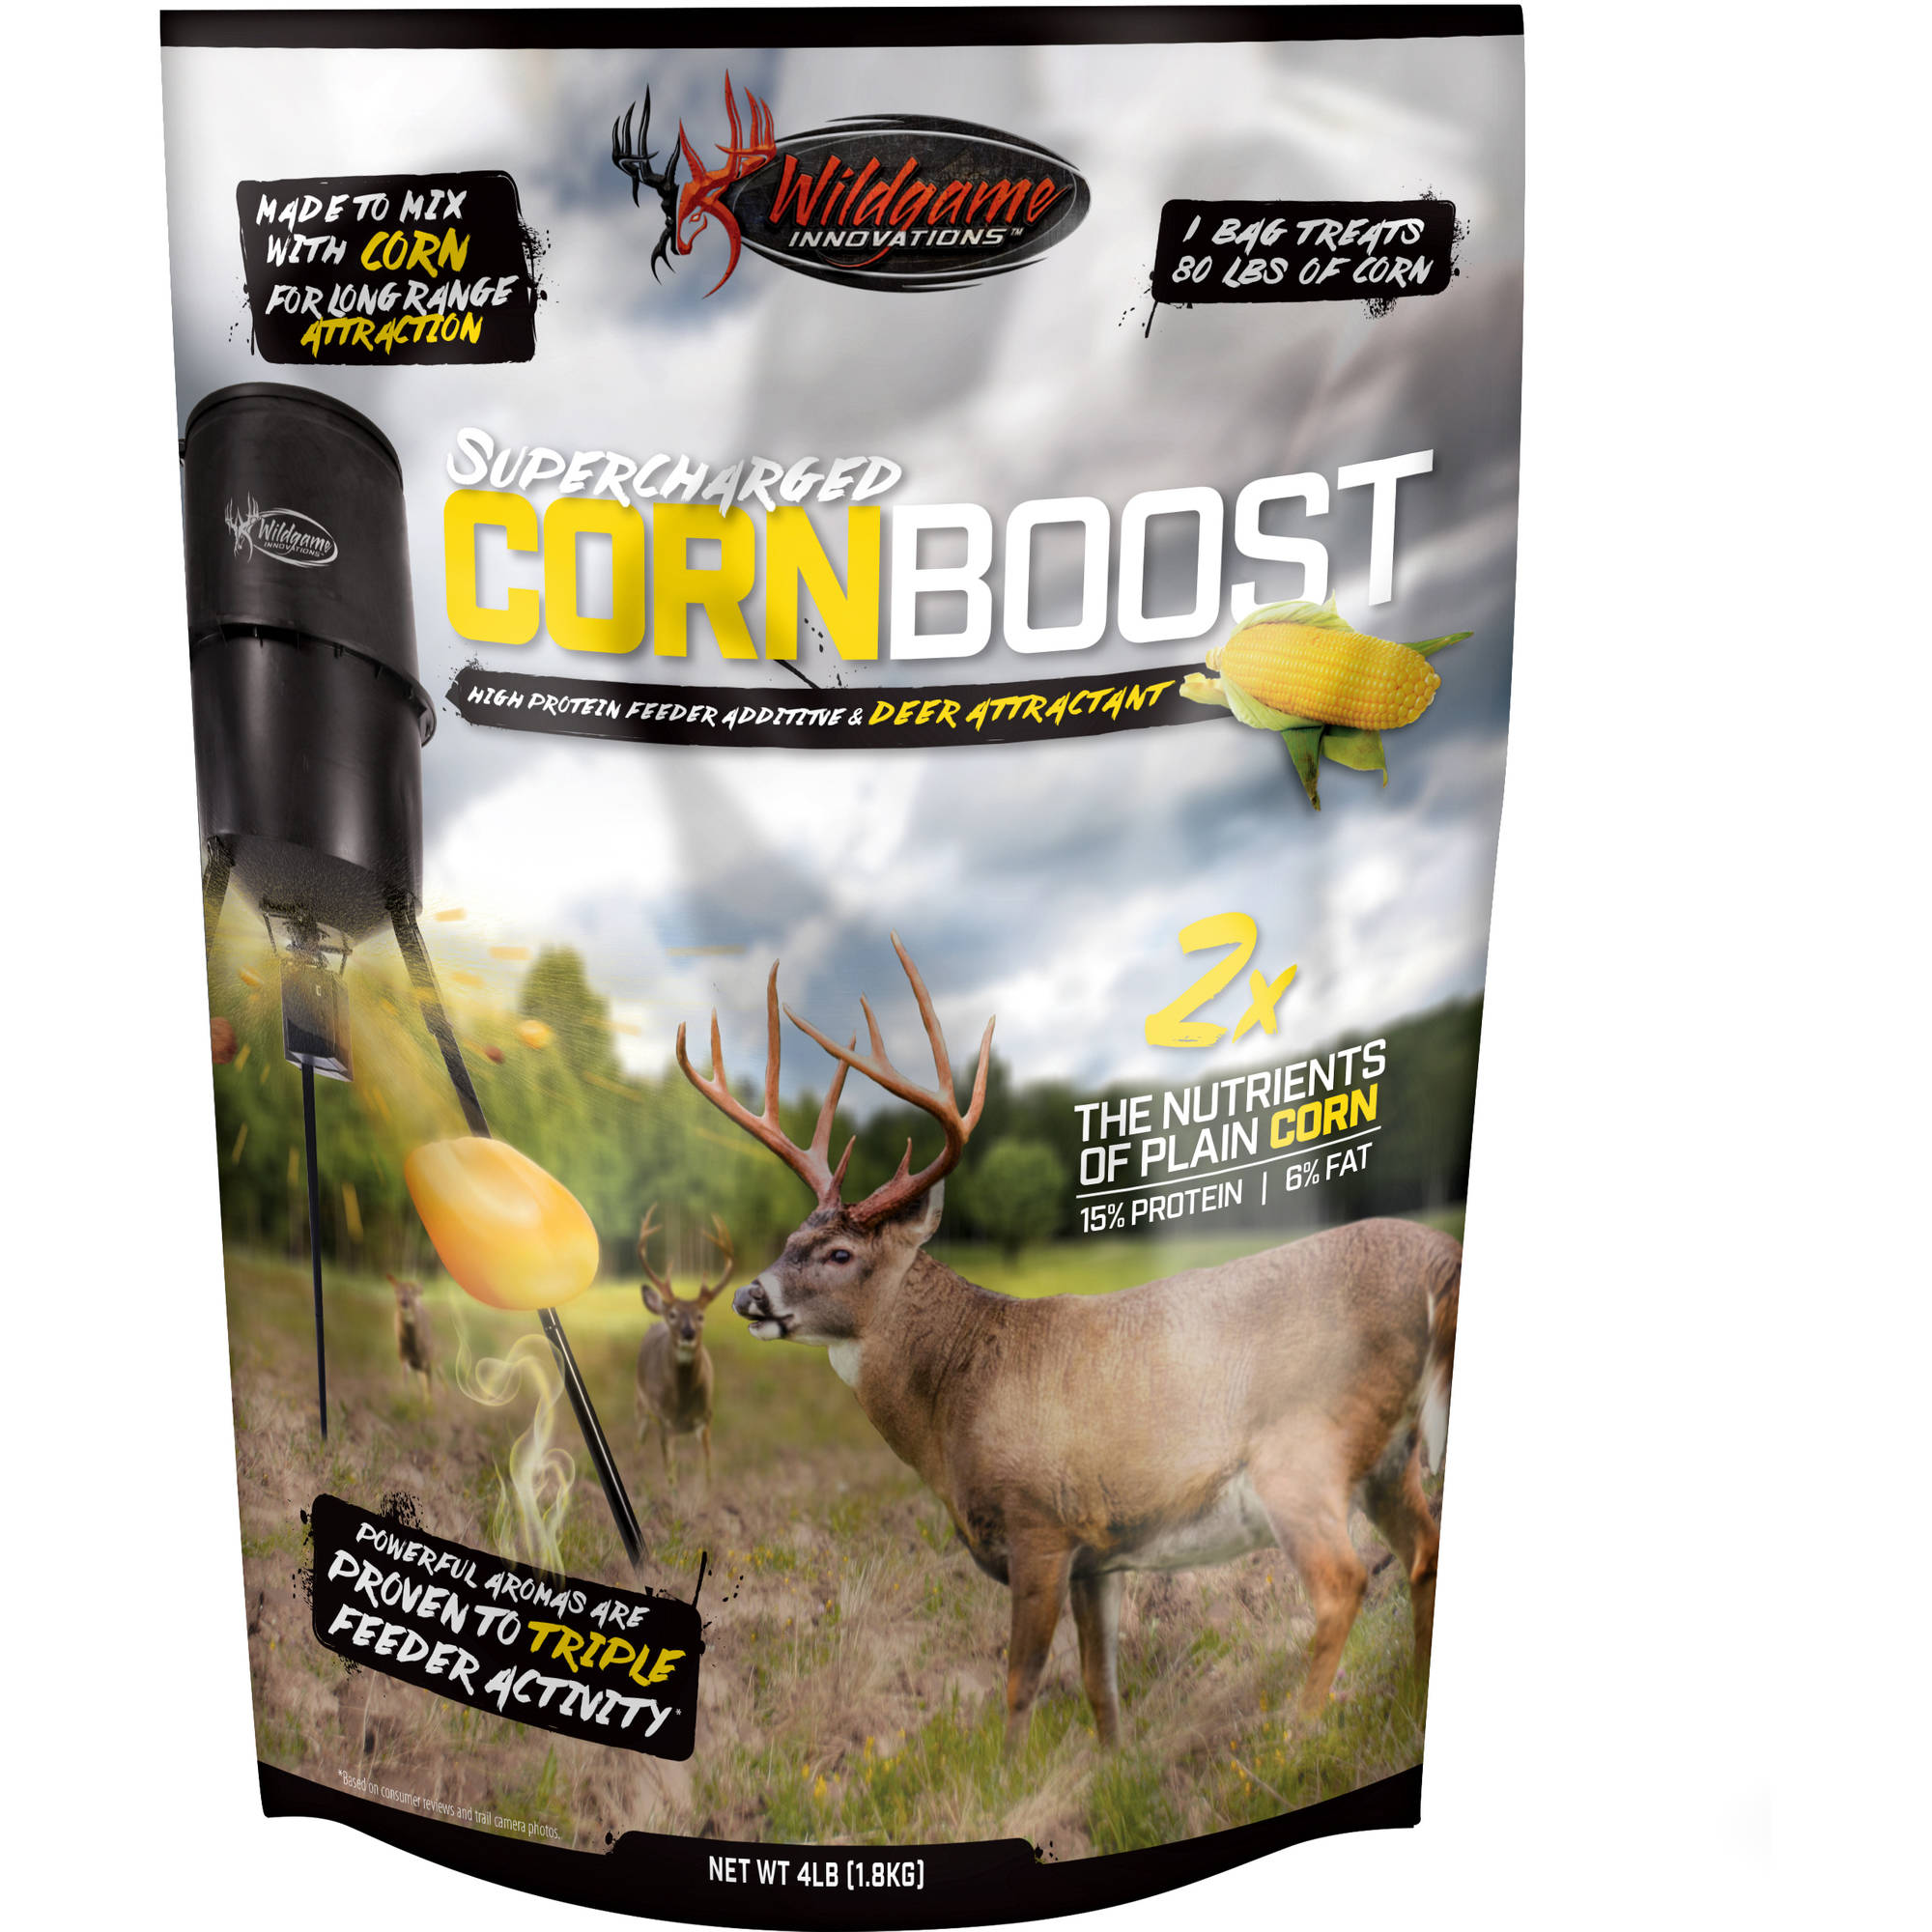 Wildgame Innovations Corn Boost